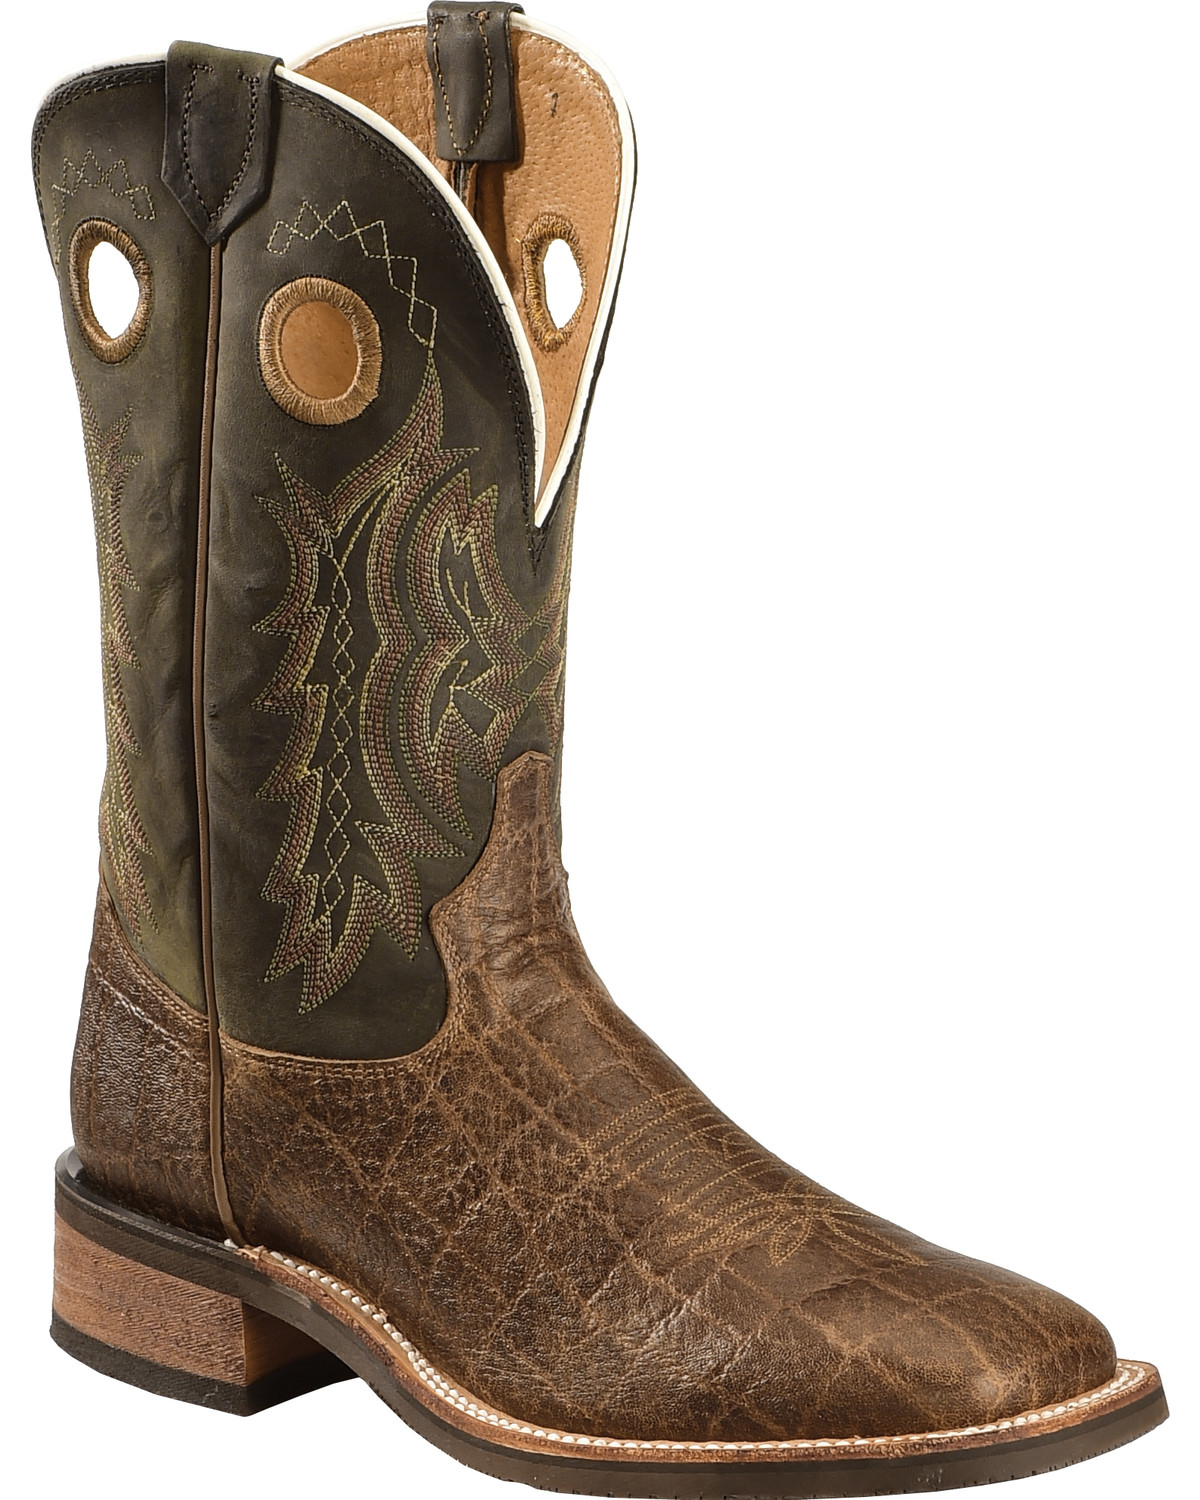 brand new dirt cheap great deals Tony Lama Men's Americana Elephant Grain Print Cowboy Boots - Square Toe